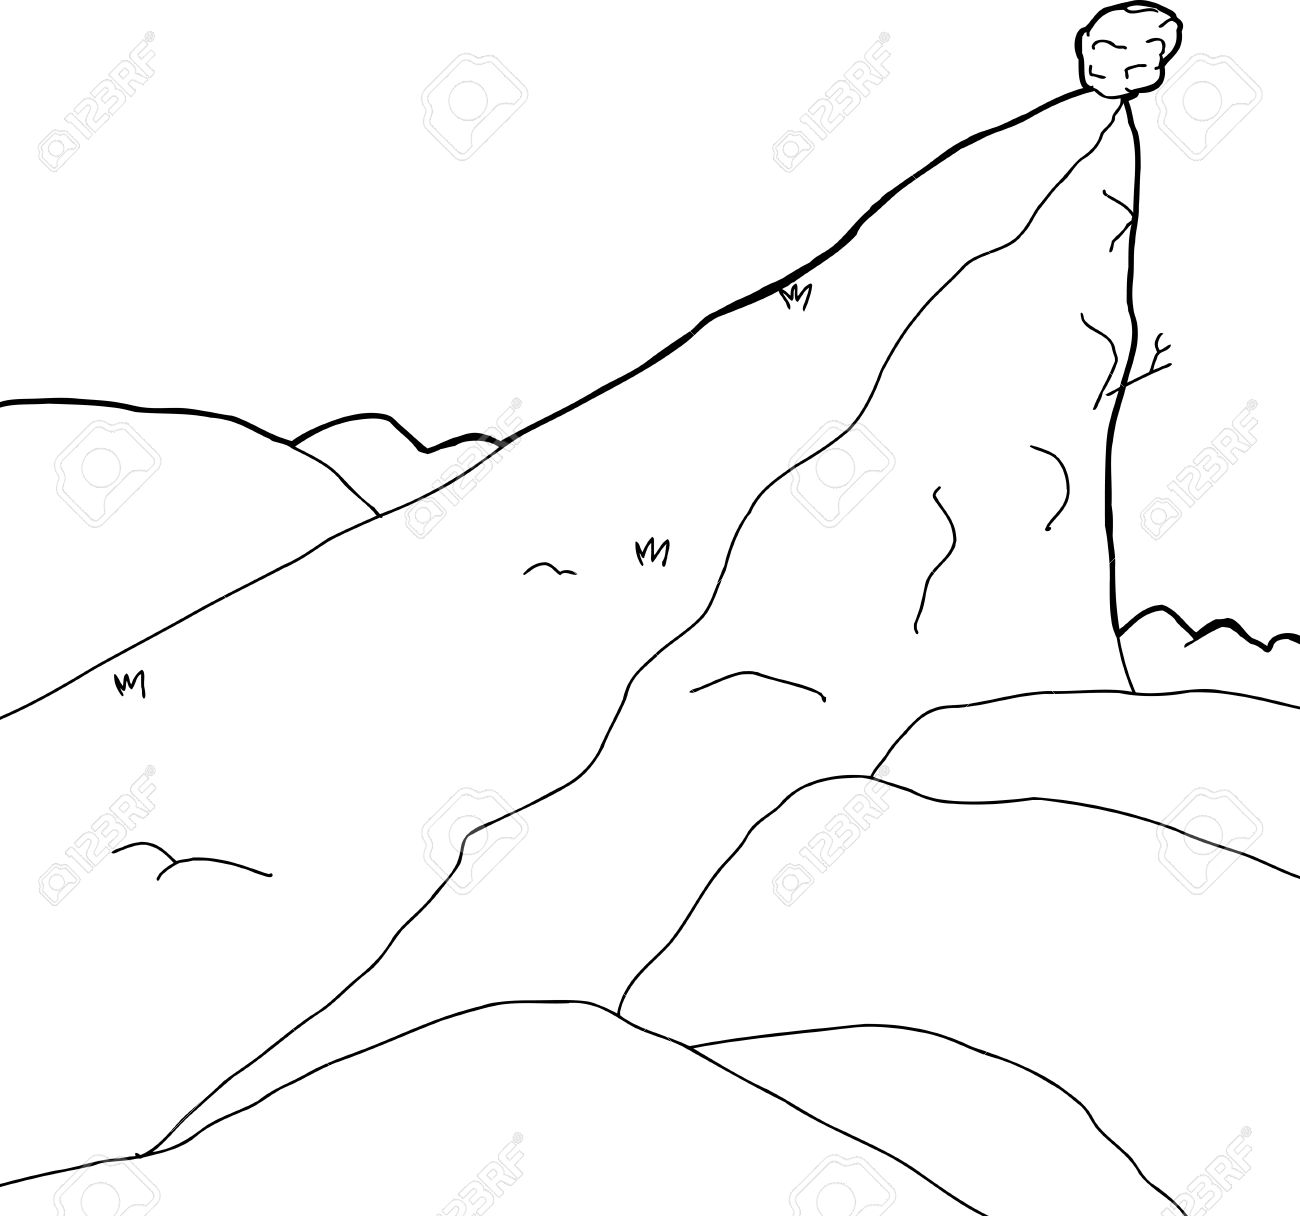 Outlined Rock Outcropping In With Boulder Cartoon Background.